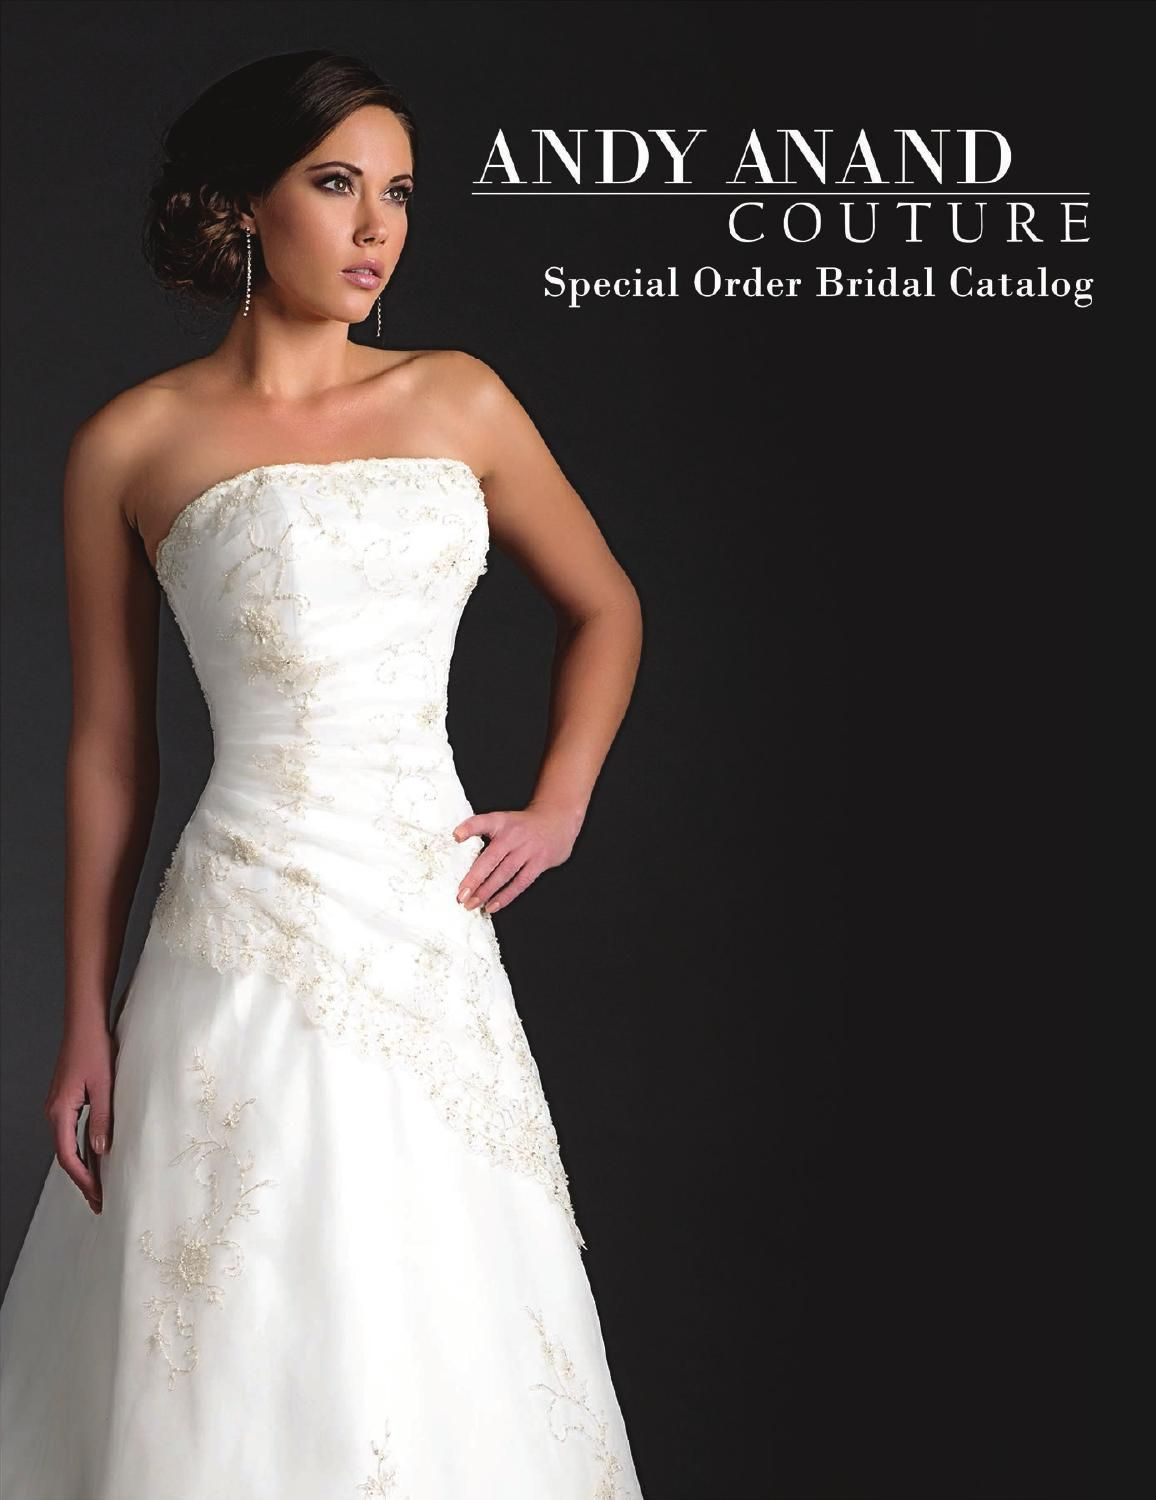 Andy Anand Couture Special Order Bridal Catalog | Bridal Gowns ...